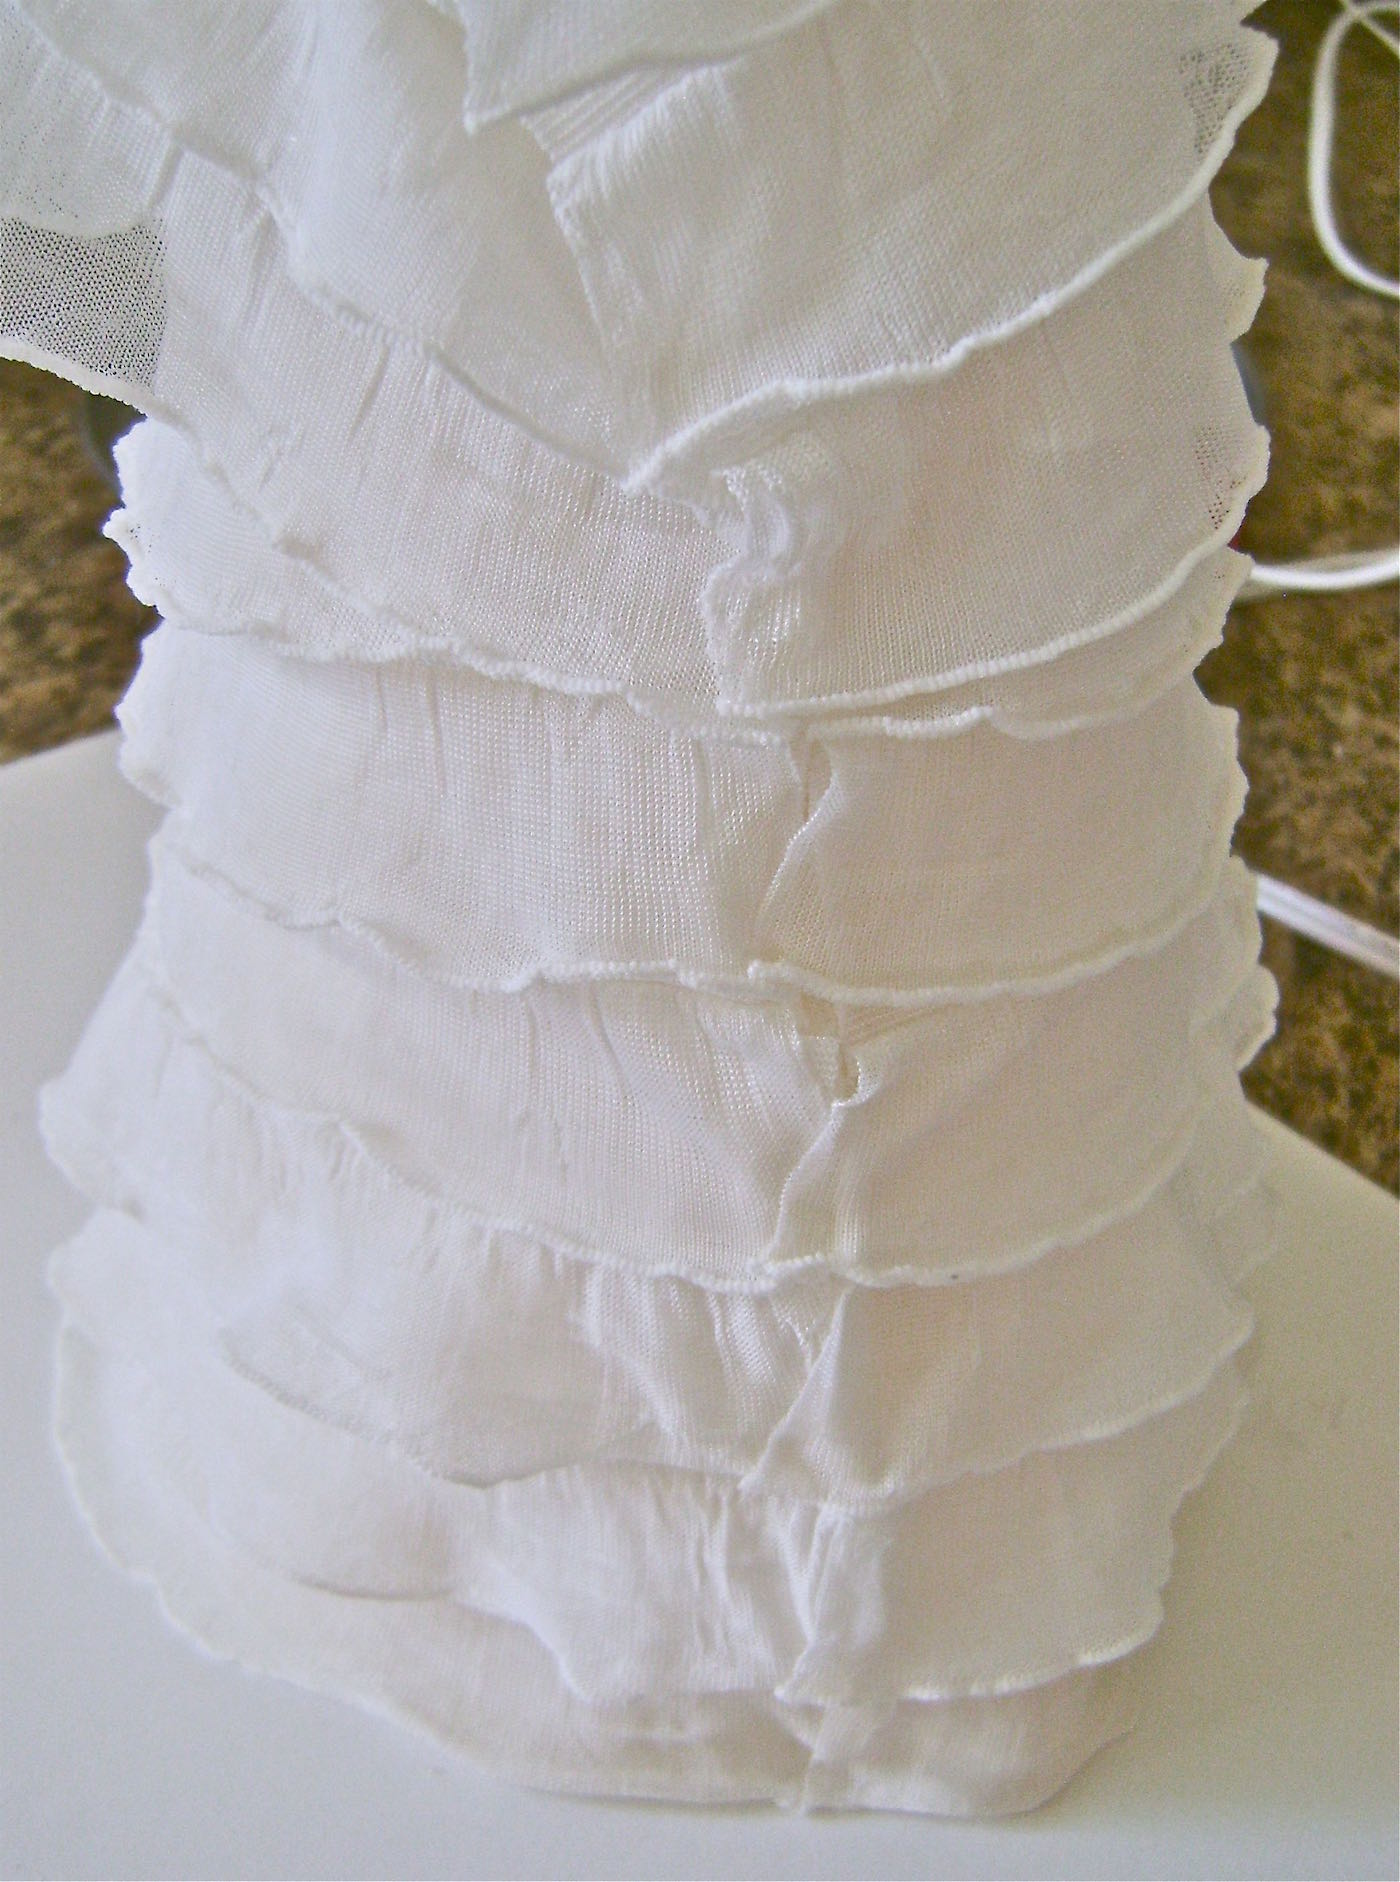 step 18 - When the seam is secure, overlap the ruffle edges and dot with glue to hold them together.